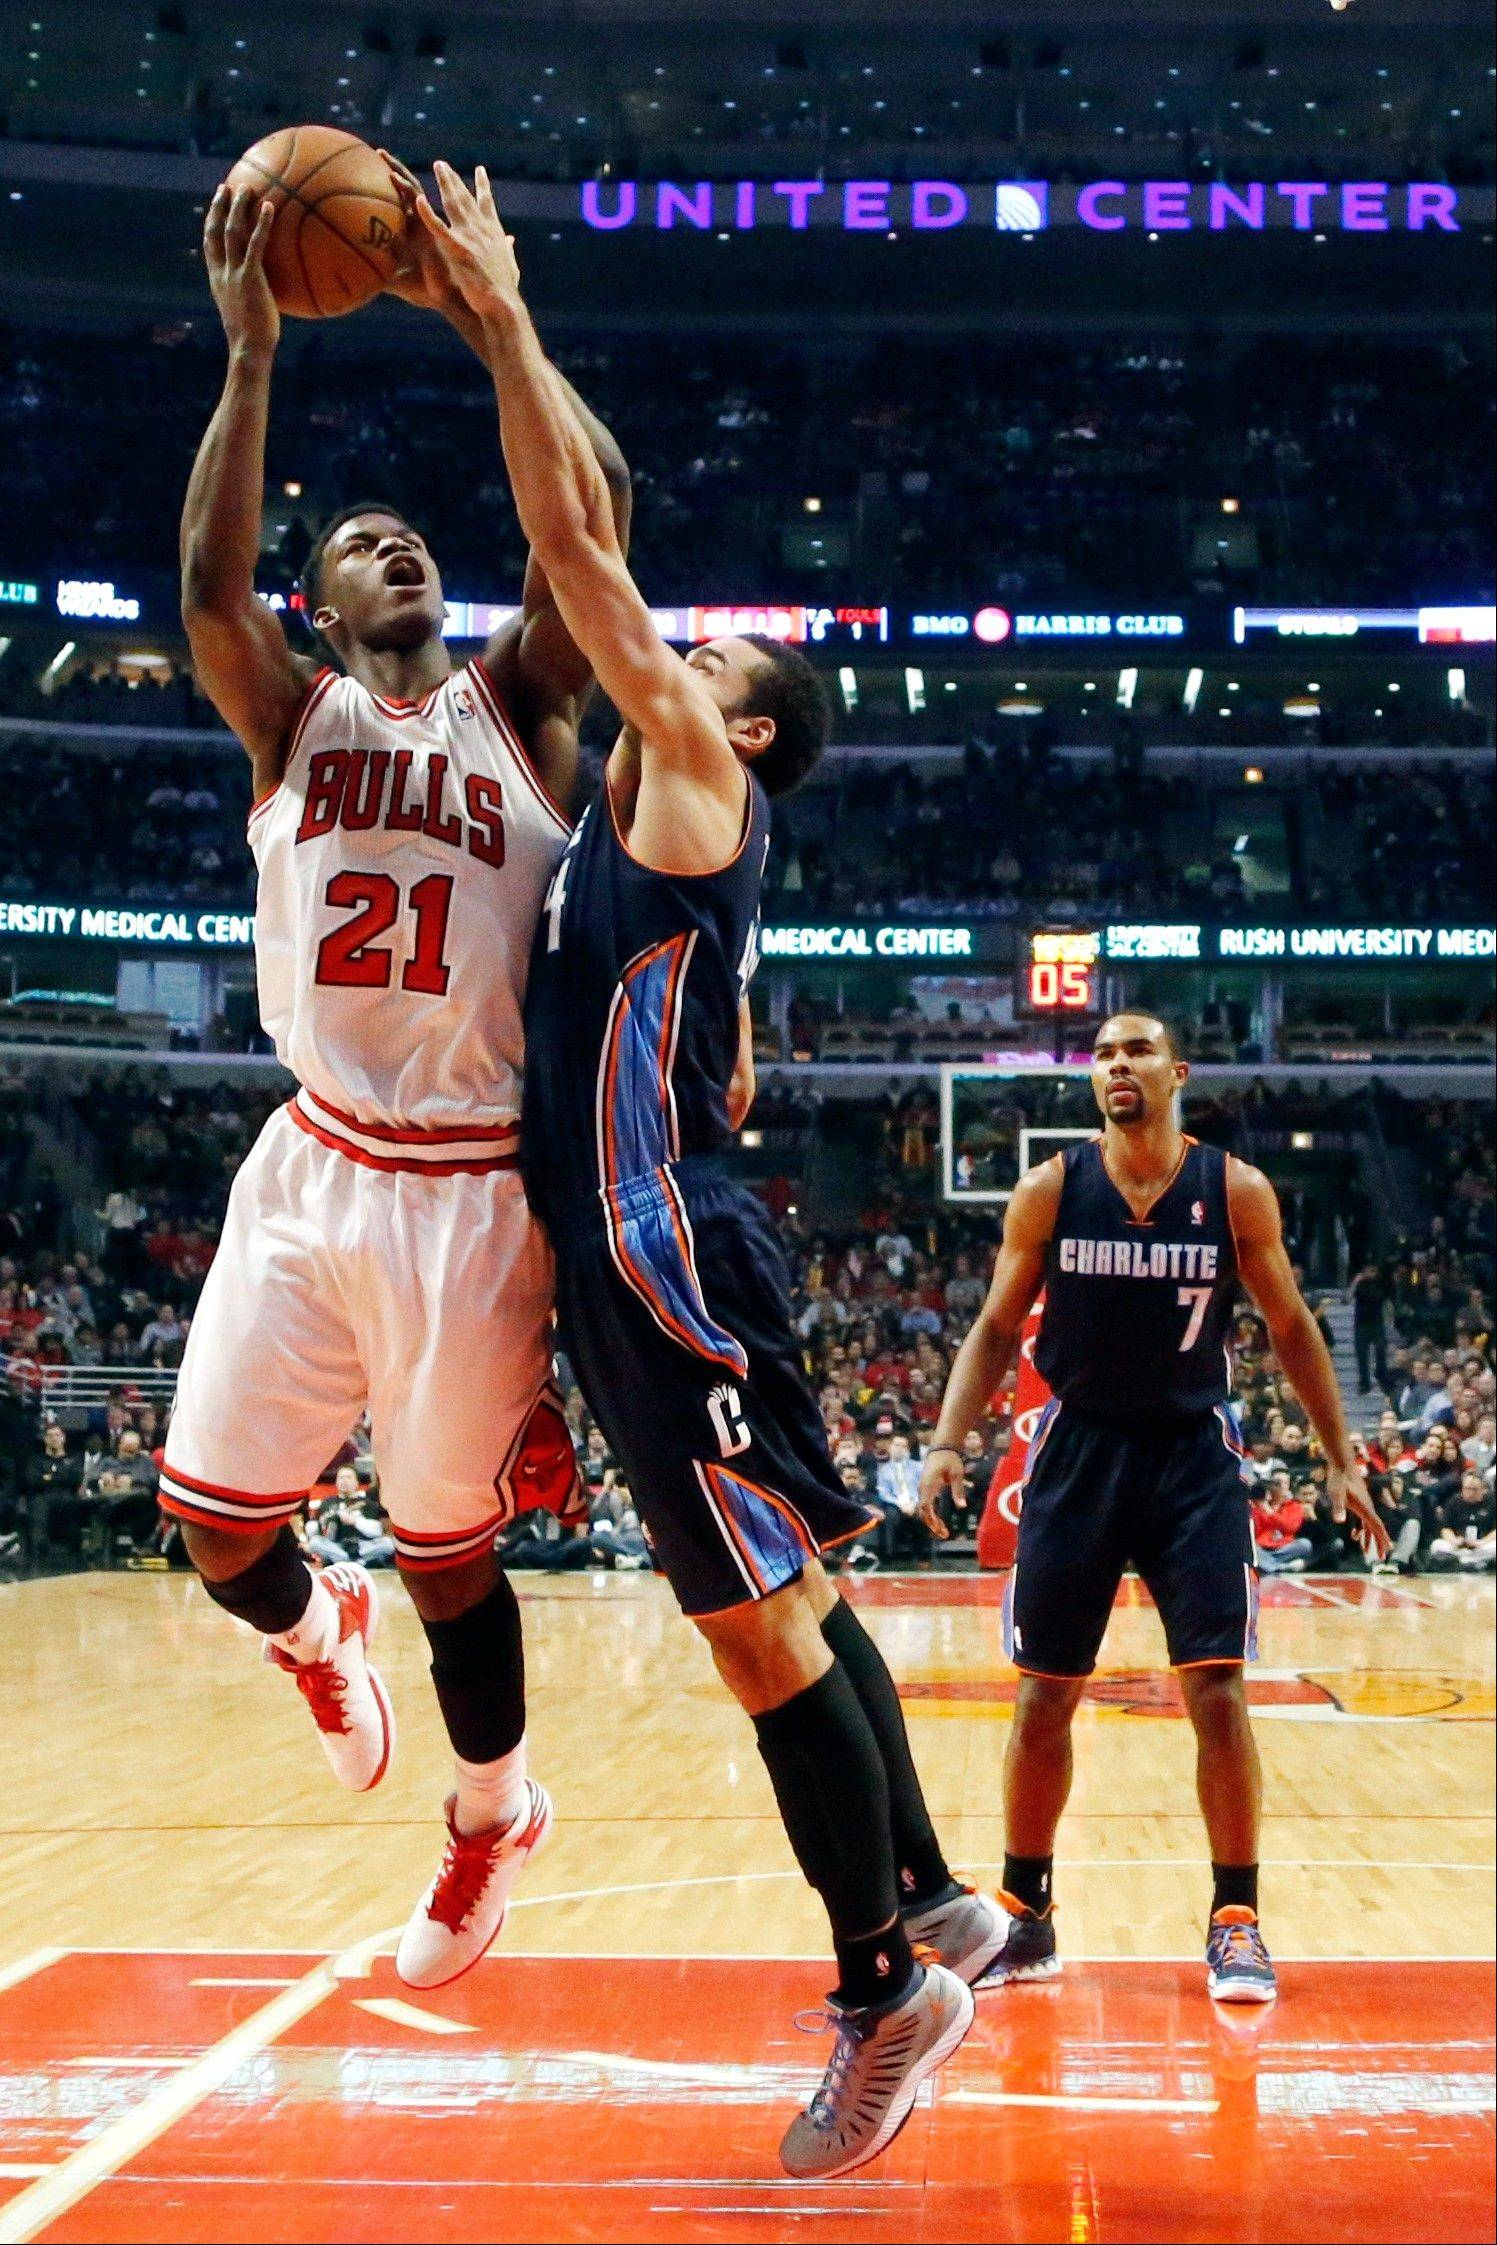 Butler still delivers, this time off Bulls' bench